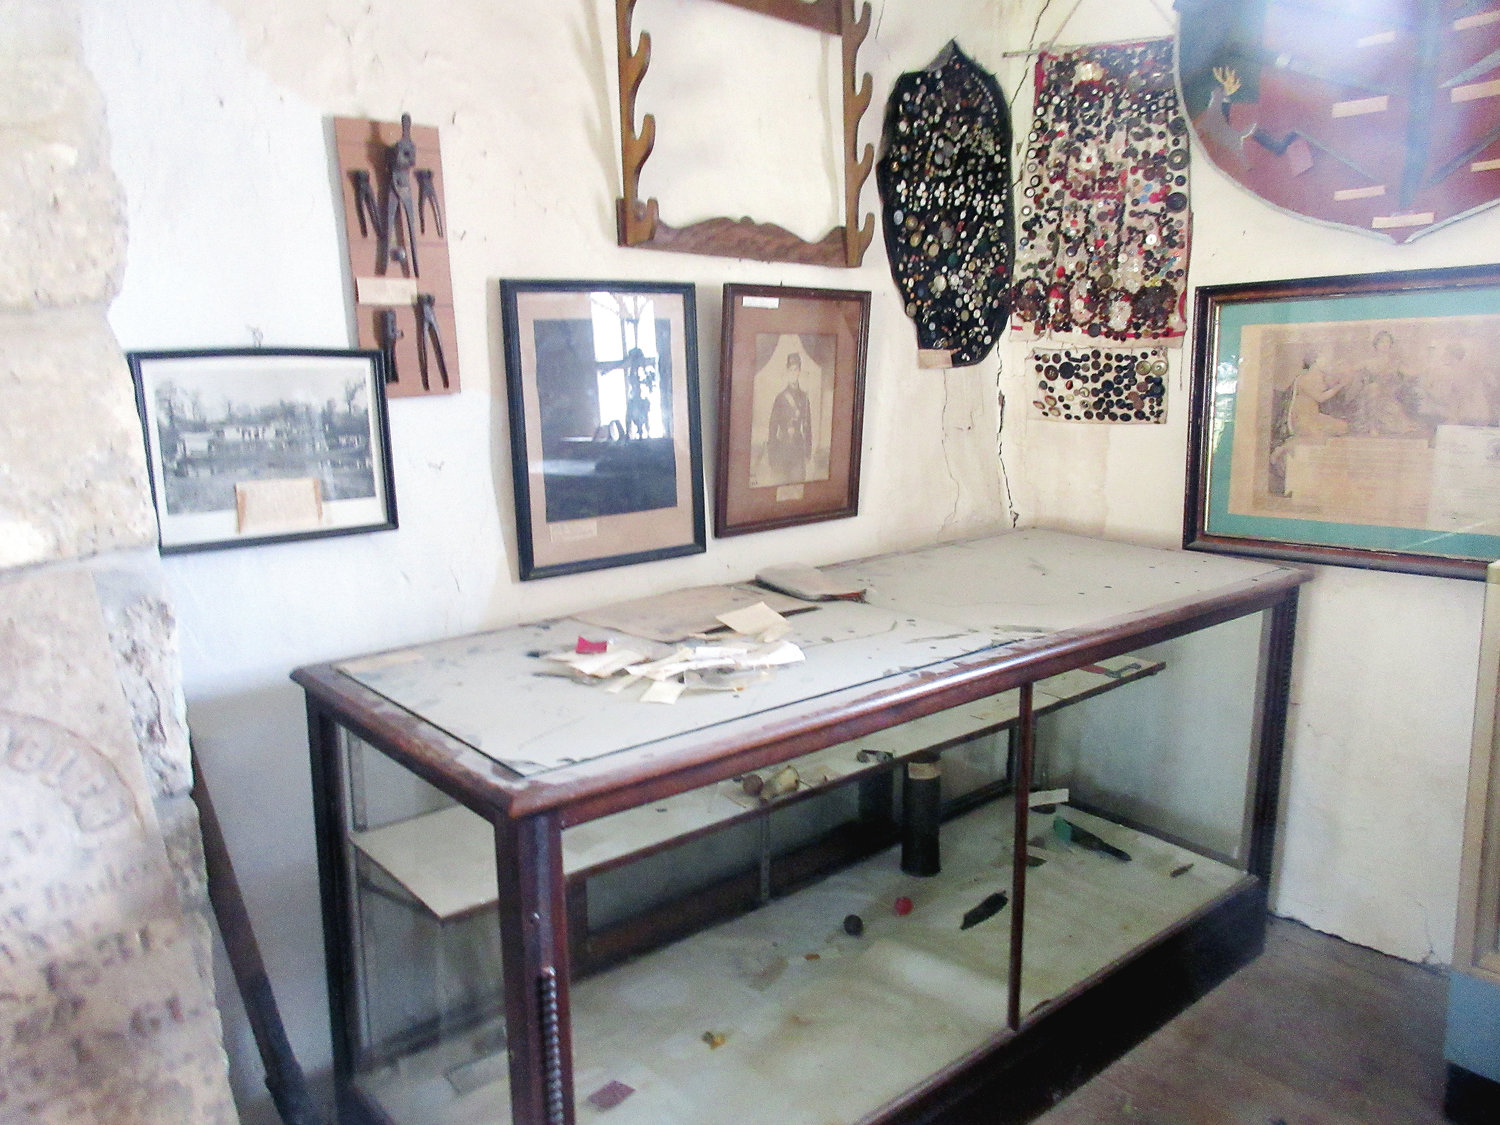 AN EMPTY gun rack and exhibit case once displayed antique weaponry and Indian artifacts of Maries County. The items were donated in memory of loved ones and stolen last week.